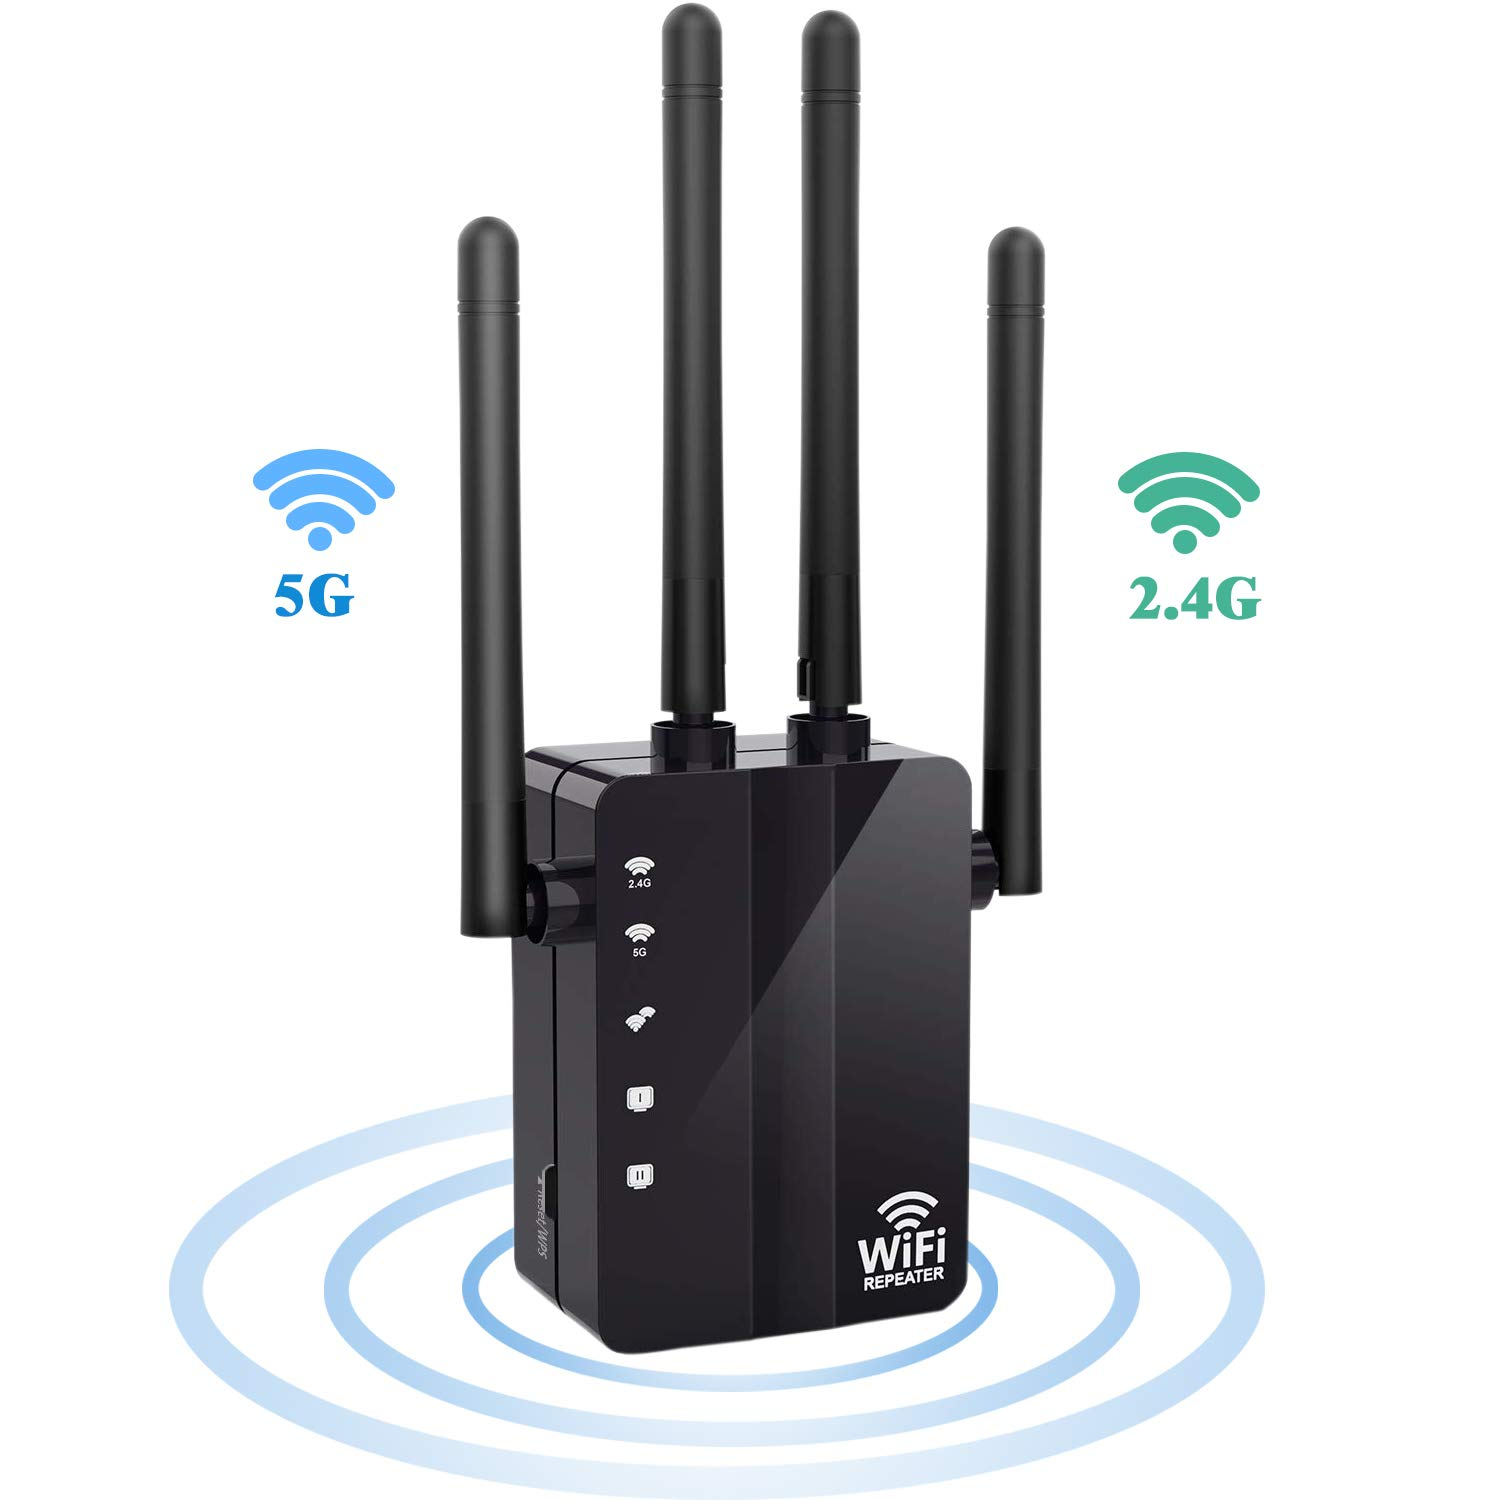 WiFi Range Extender WiFi Repeater, SURUN 1200Mbps Wireless Signal Booster, 2.4 and 5G Dual-Band WiFi Extender with 4 External Antennas, with Gigabit Ethernet Port, 360-Degree Full Coverage Network